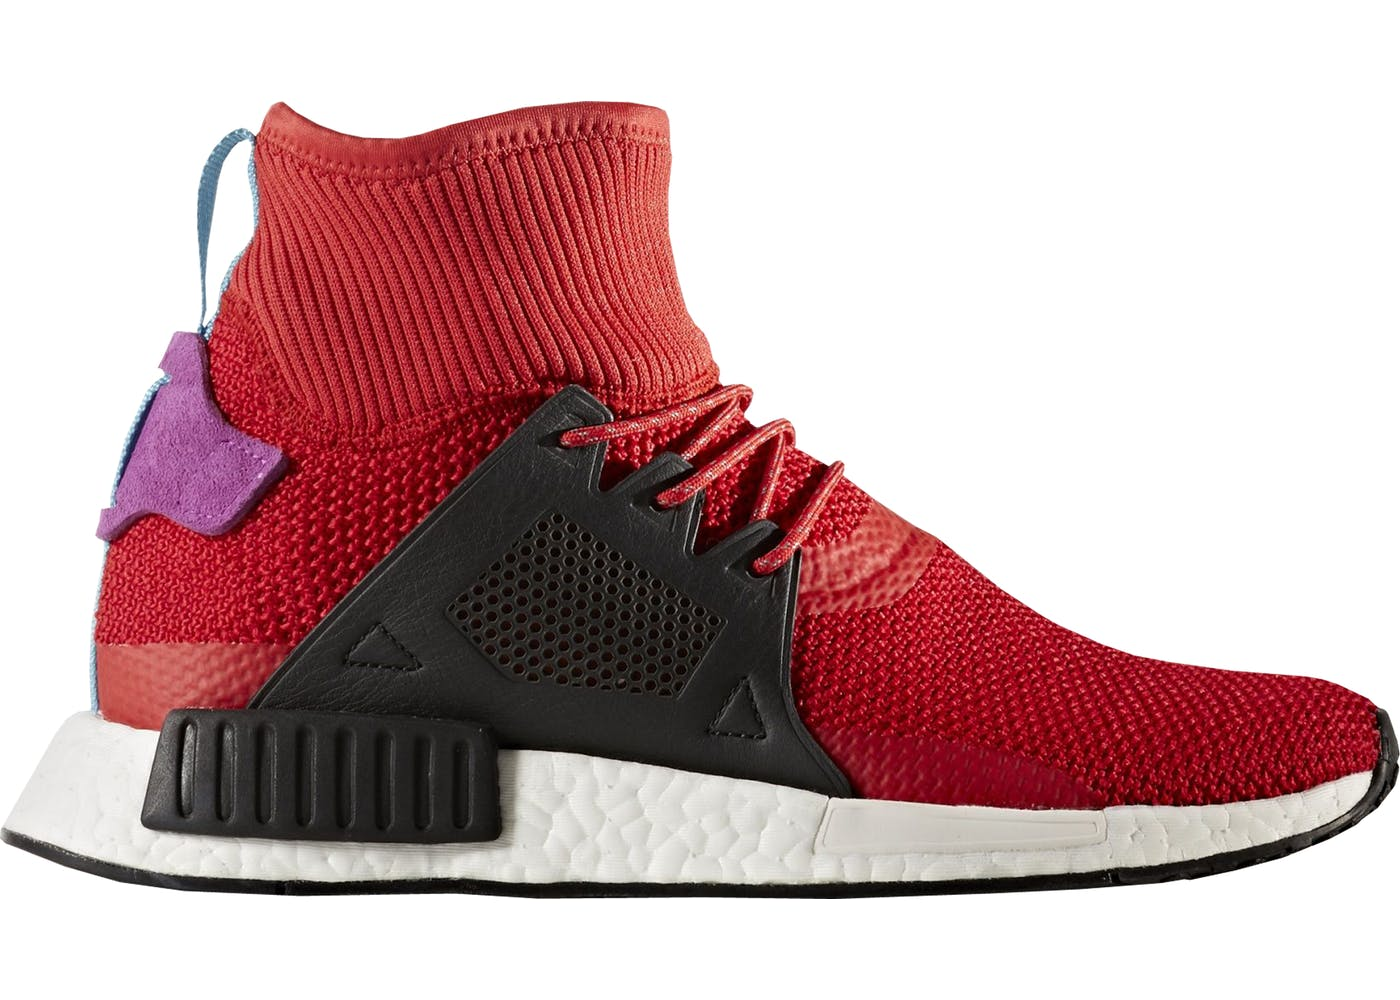 NMD_XR1 Primeknit Shoes Adidas